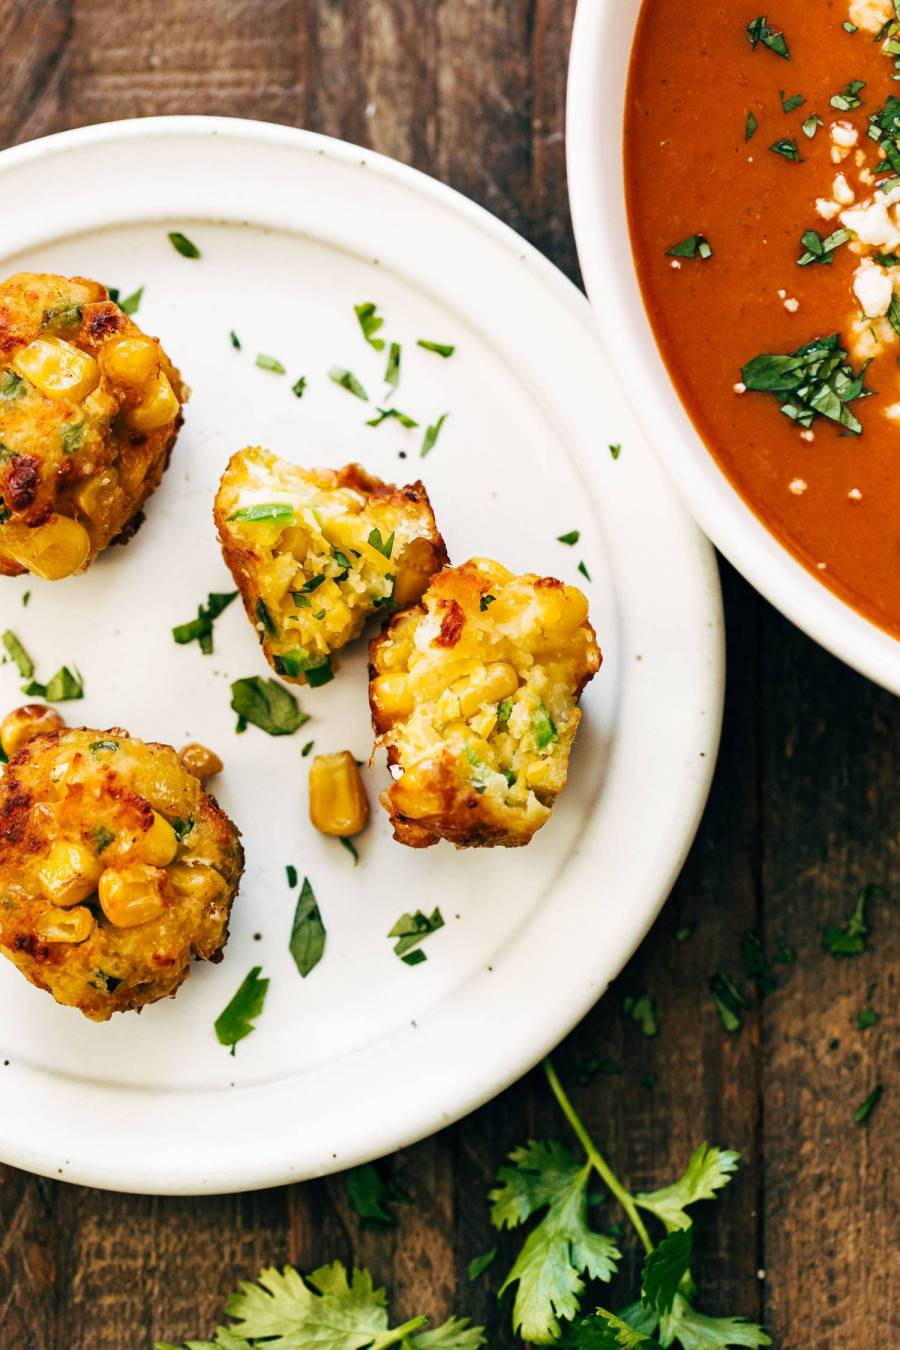 Jalapeno corn fritters on a plate.